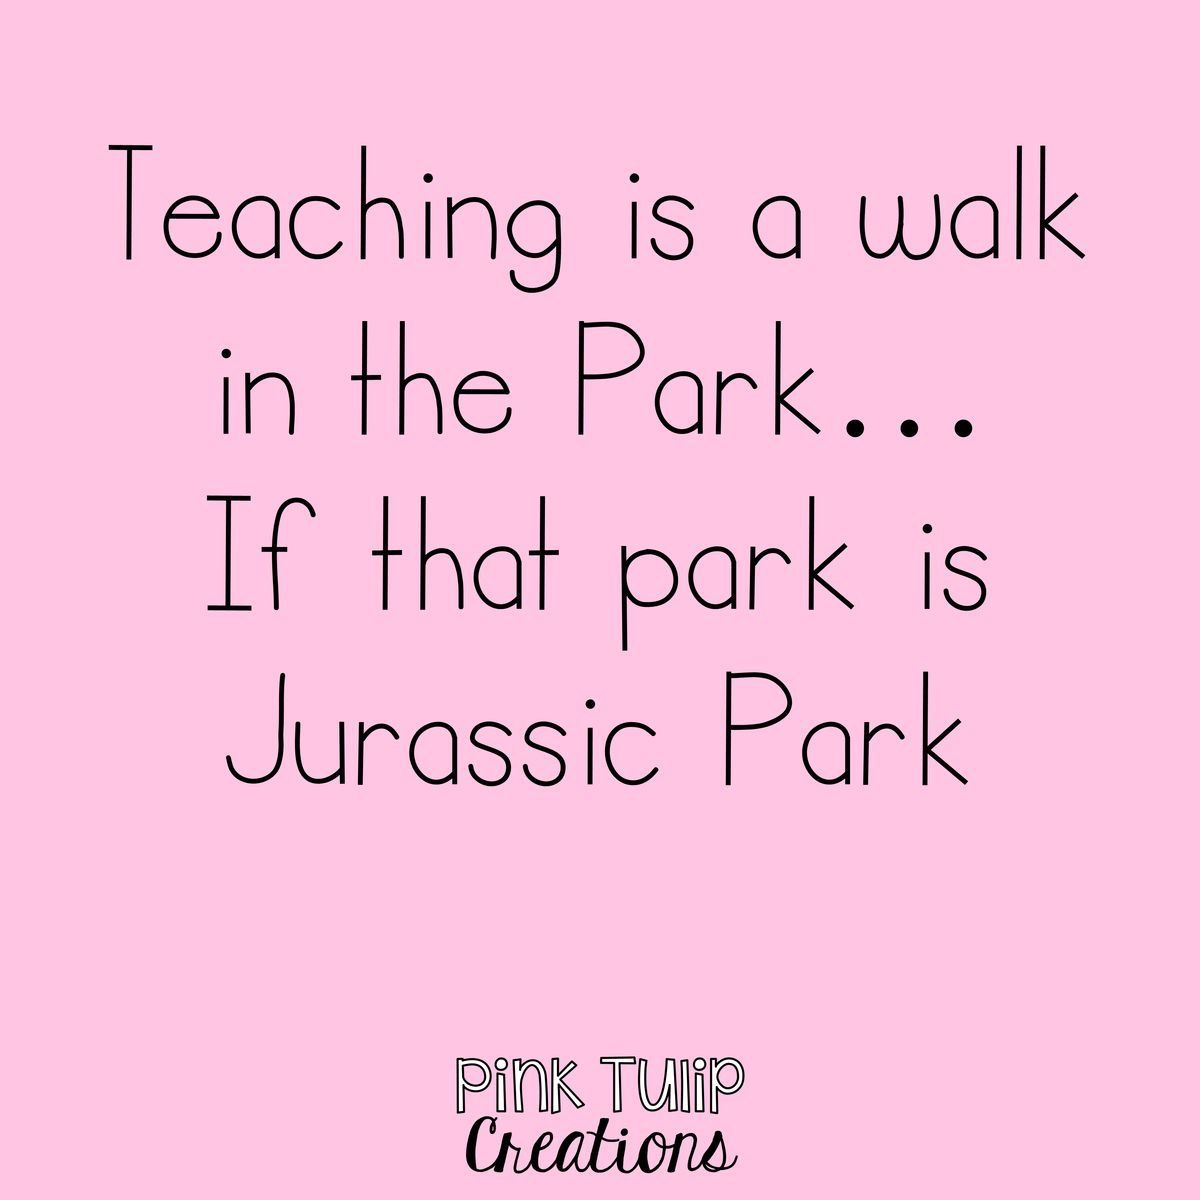 Pin by Christopher Merritt Voigt on Teach and Learn | Teacher quotes funny,  Teacher jokes, Teaching quotes